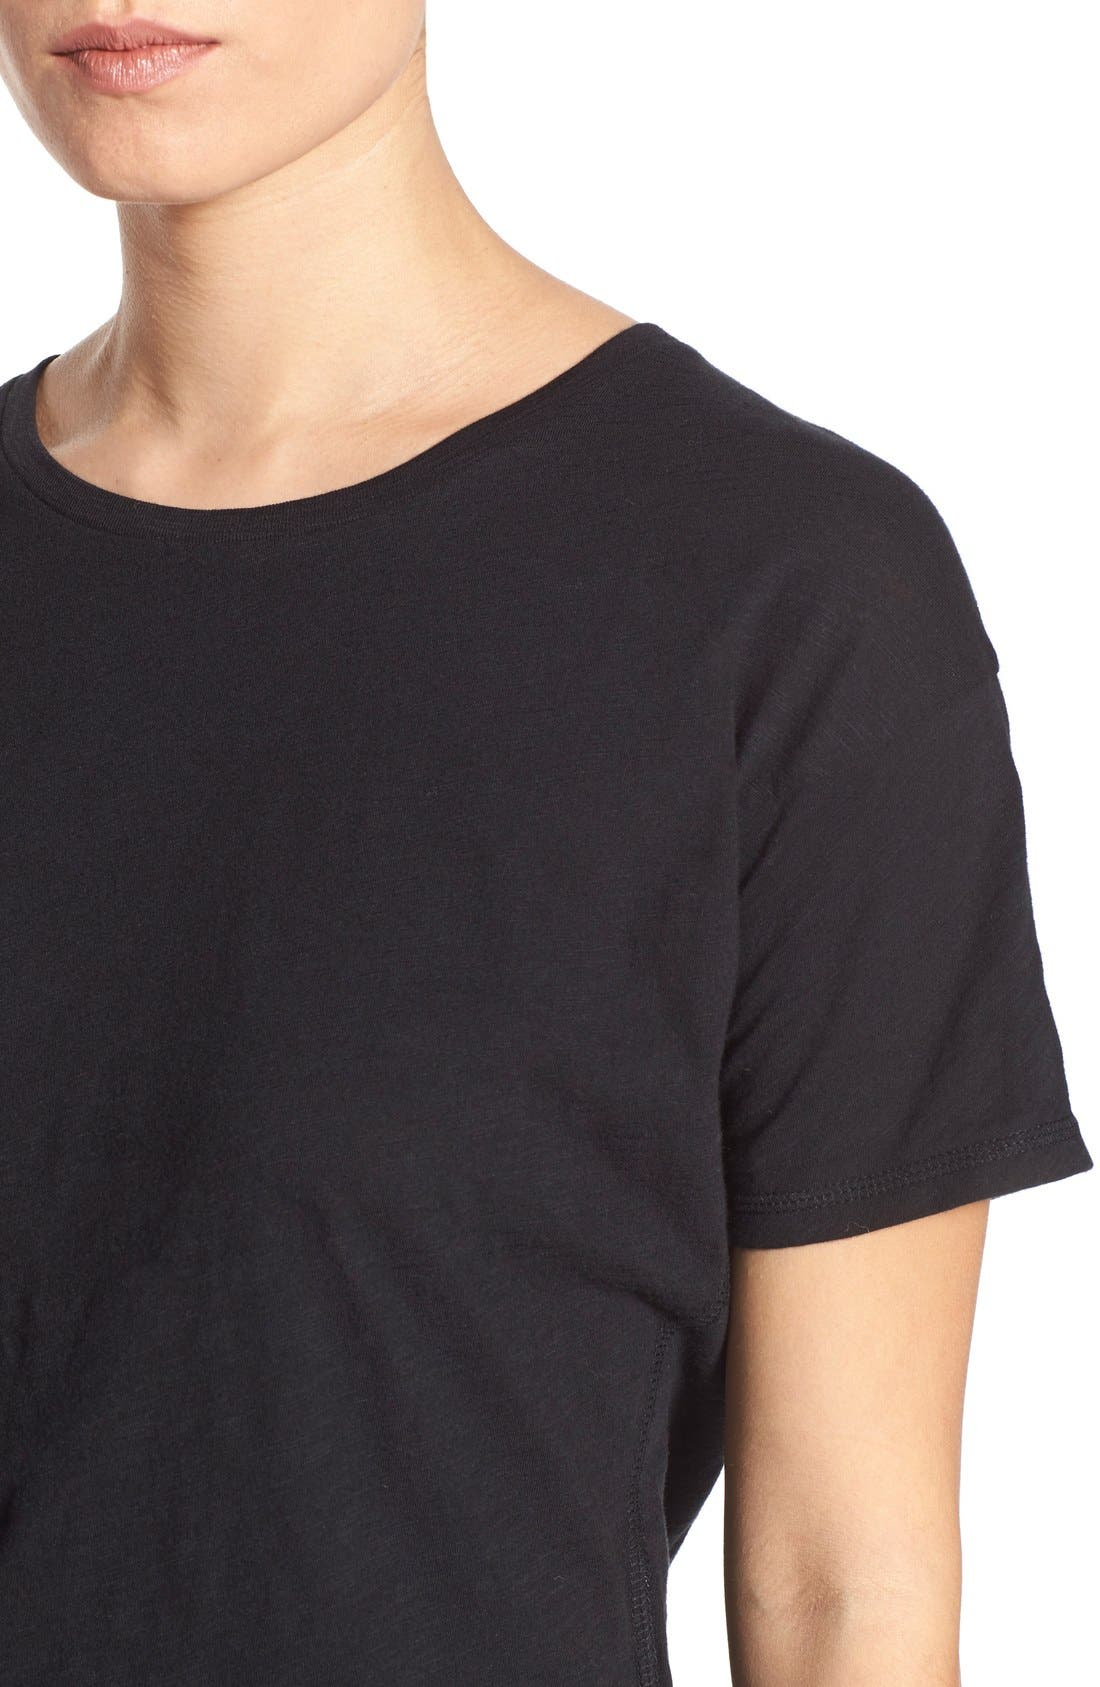 MADEWELL, 'Whisper' Cotton Crewneck Tee, Alternate thumbnail 4, color, TRUE BLACK